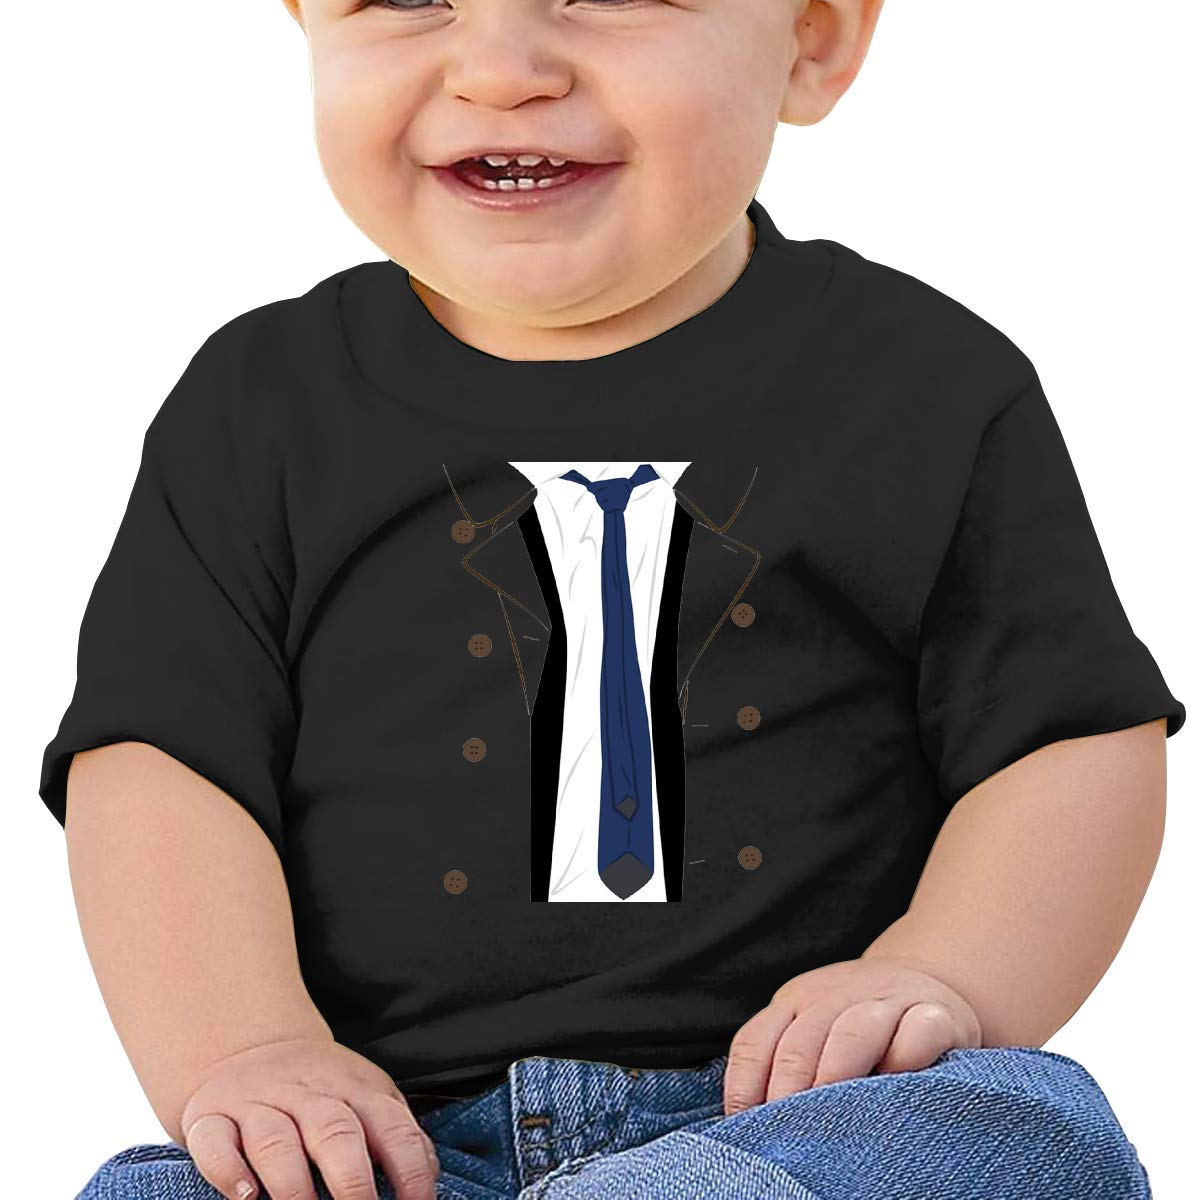 Supernatural Castiel Suit Baby T-Shirt Kids Cotton T Shirts Funny Tops for 6M-2T Baby